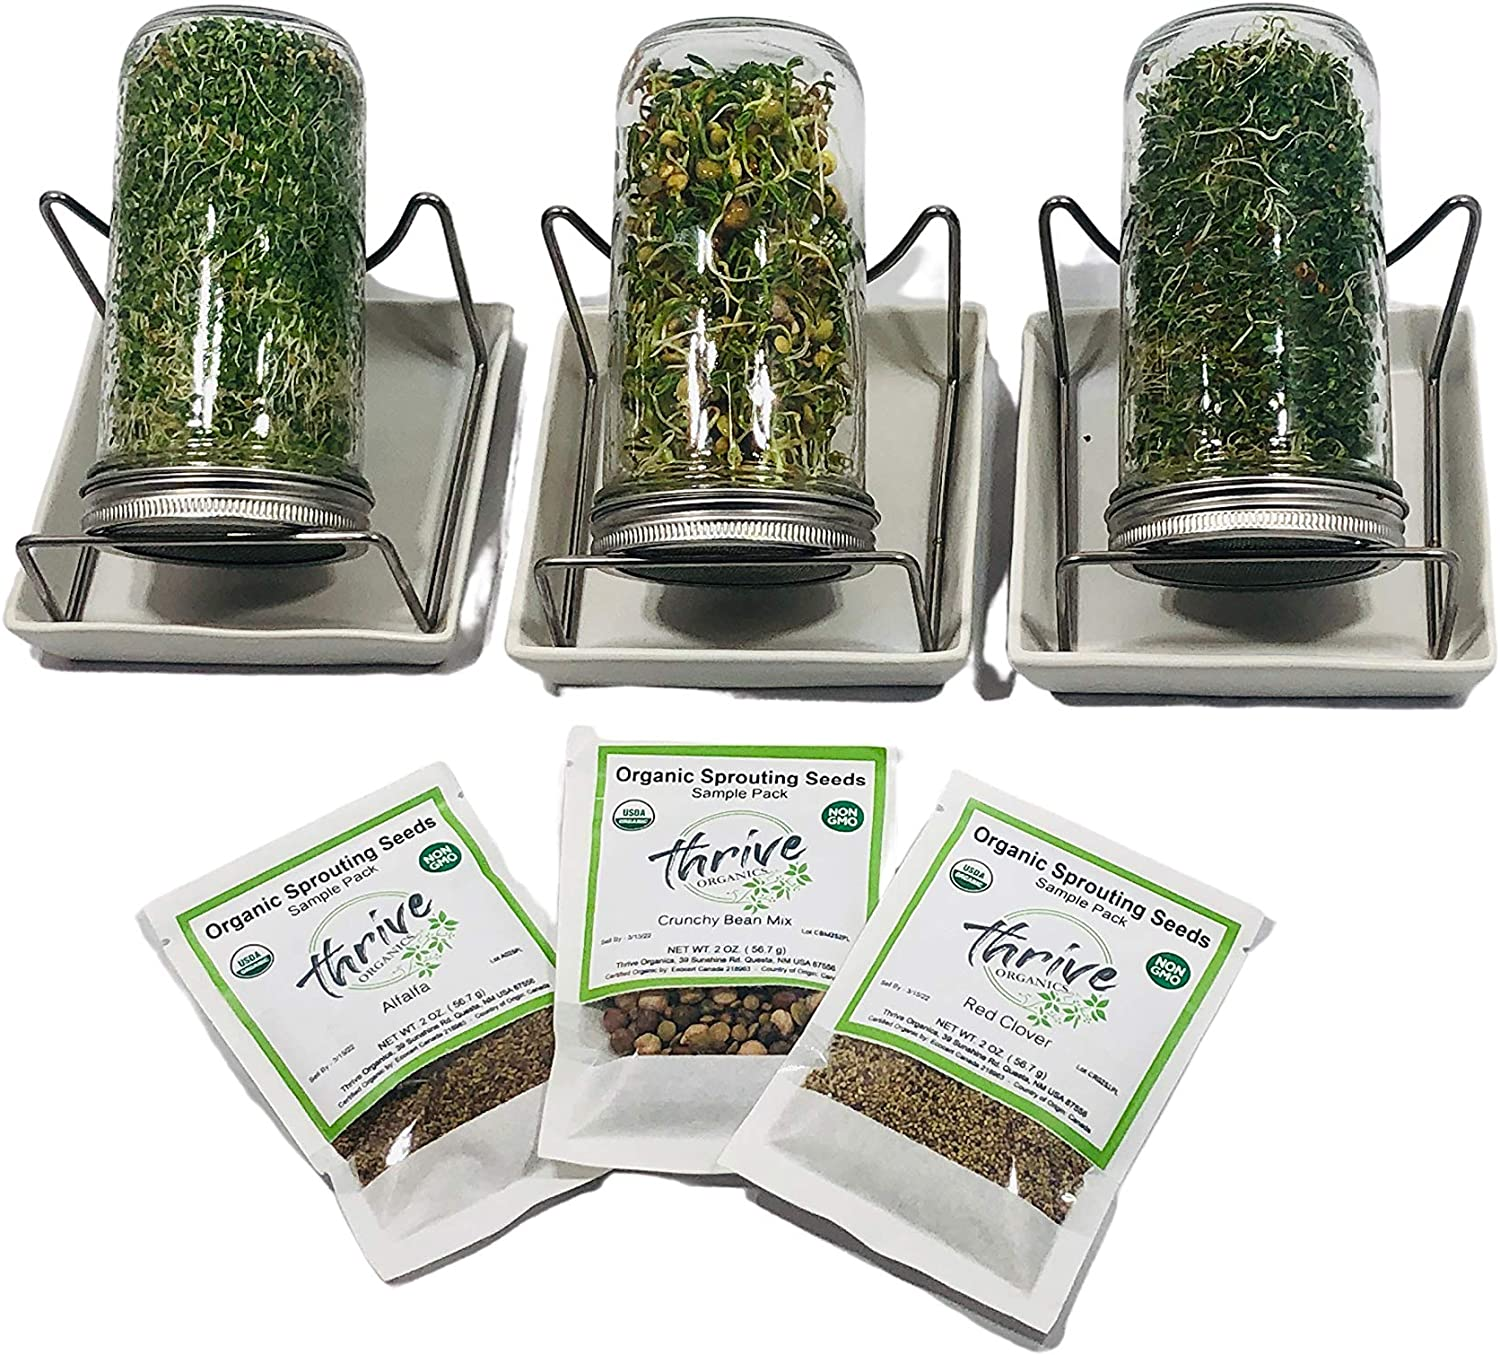 Organic Sprouting Kit with Seeds - Set of 3 Wide Mouth Mason Sprouting Jars with Stainless Steel Lids, Screens & Stands and Ceramic Drip Trays - Complete with Non GMO Organic Sprouting Seeds